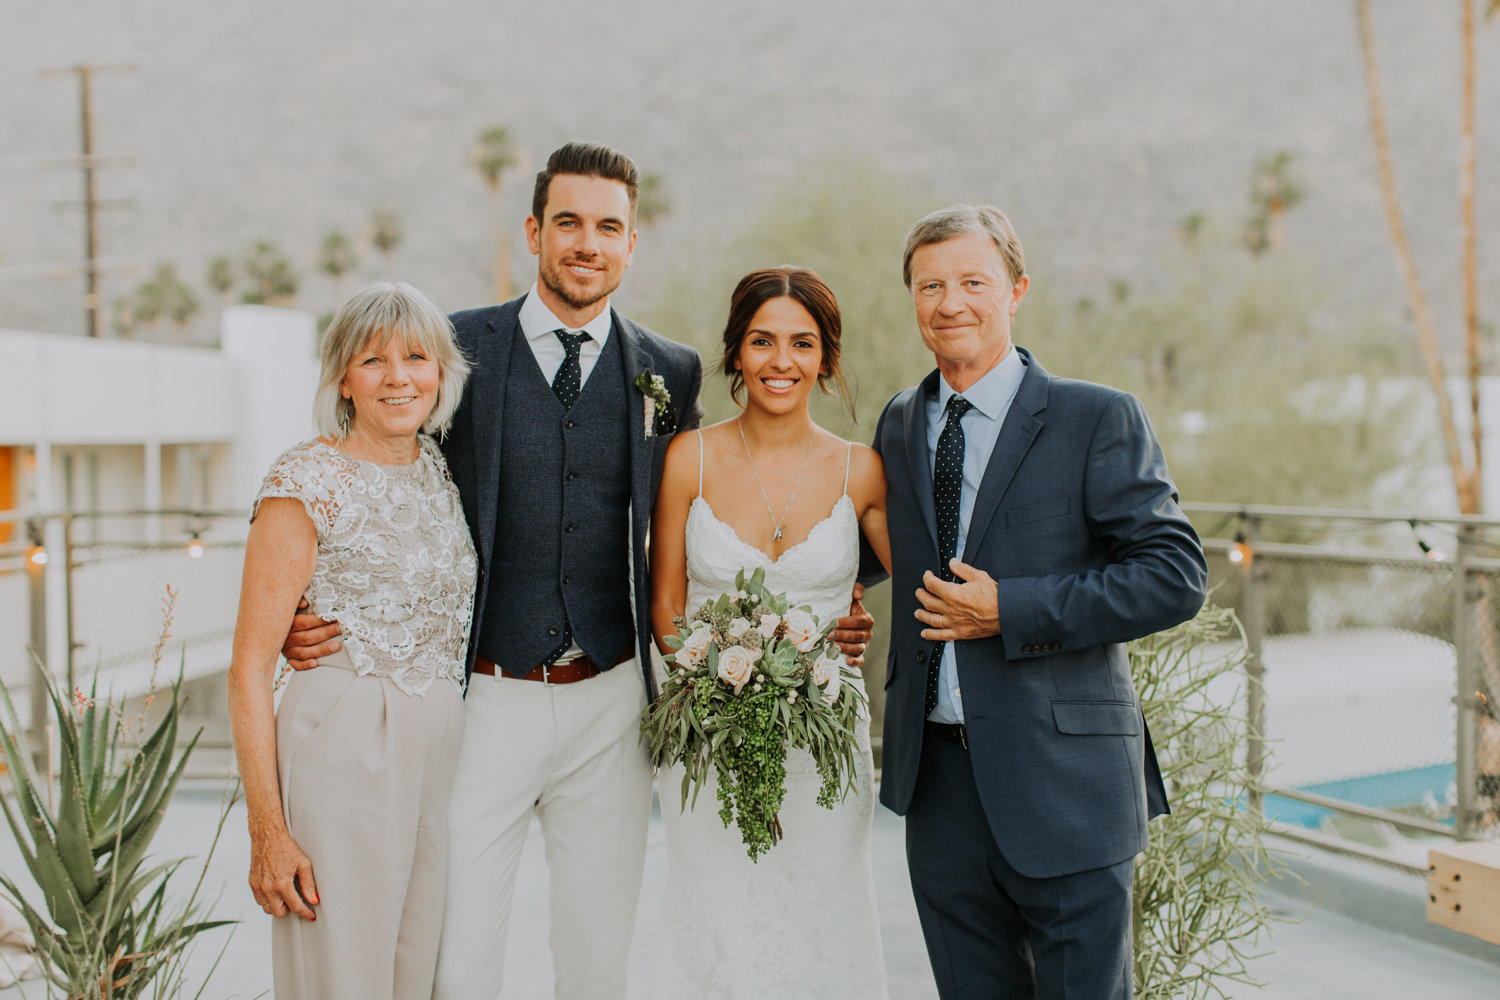 Brianna Broyles_Palm Springs Wedding Photographer_Ace Hotel Wedding_Ace Hotel Palm Springs-61